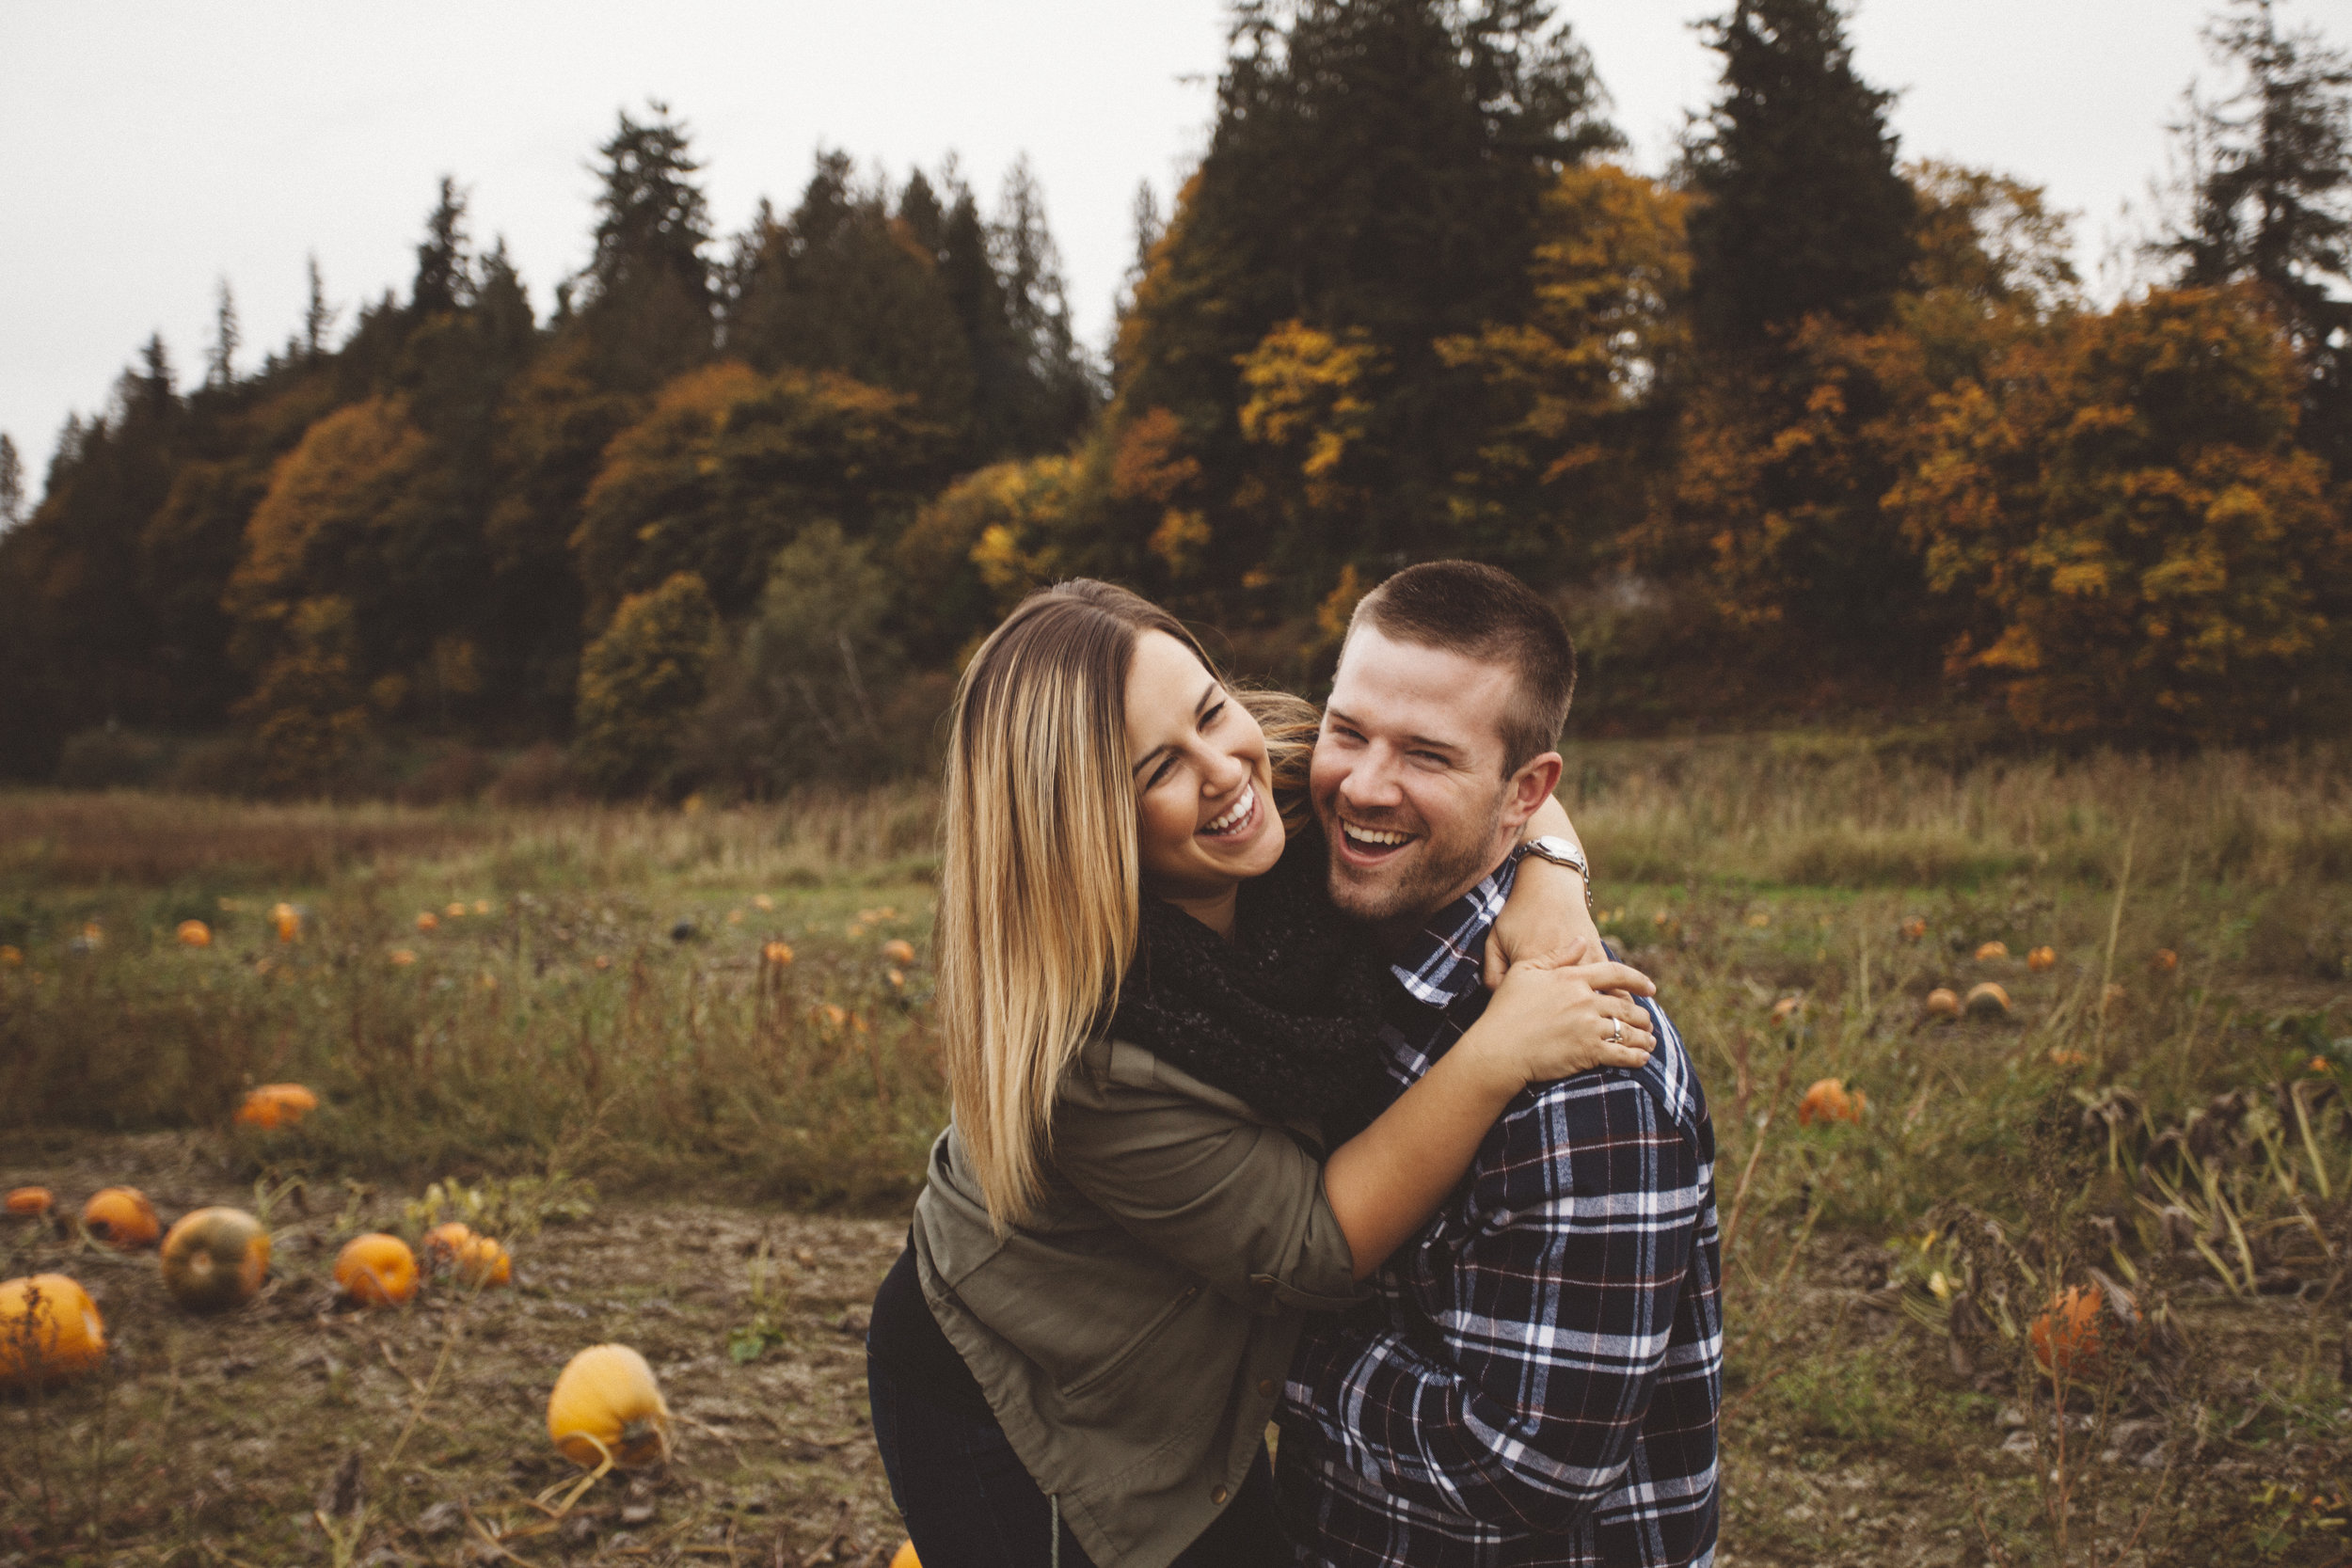 We had such a fun time working with warren! He was so professional and easy to work with. We have never had professional pictures done before and Warren really helped break the ice and get us out of the shell! I would highly consider hiring him for any engagement session. His work is not only beautiful, but tells the perfect story any newlywed is looking for.Thank you warren!! - Lauren & Chad